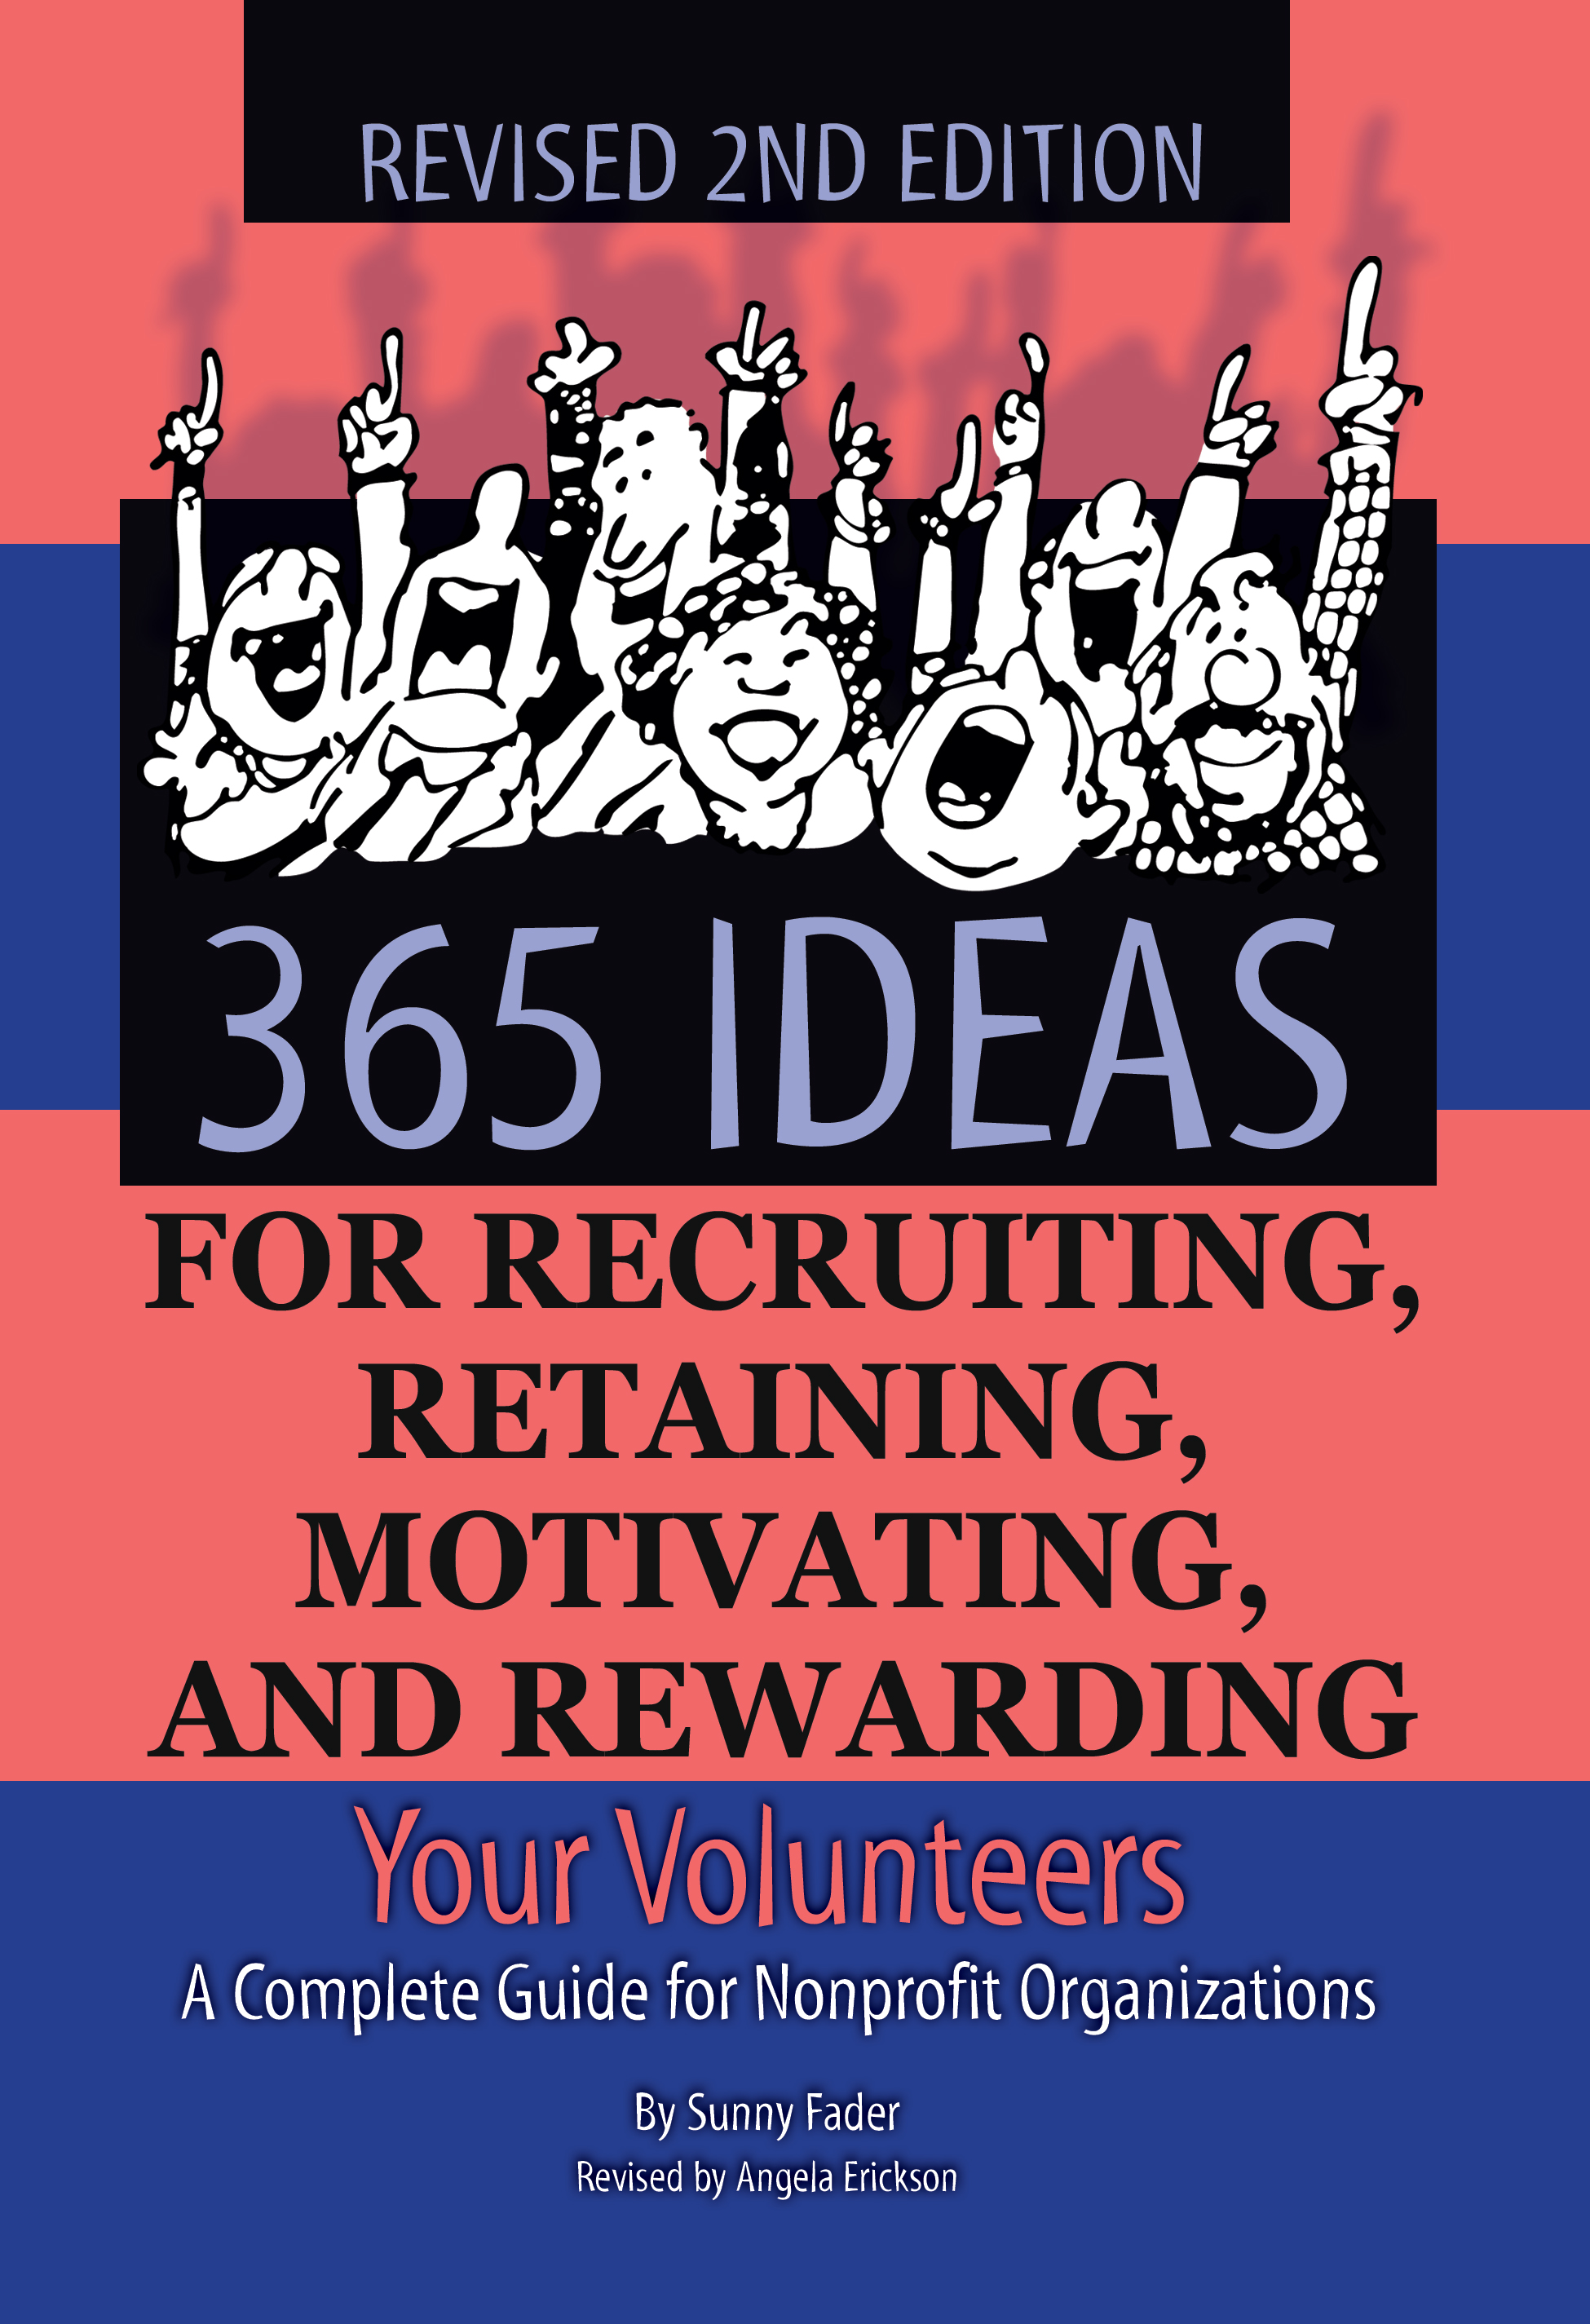 365 Ideas for Recruiting, Retaining, Motivating and Rewarding Your Volunteers A Complete Guide for Non-Profit Organizations Revised 2nd Edition